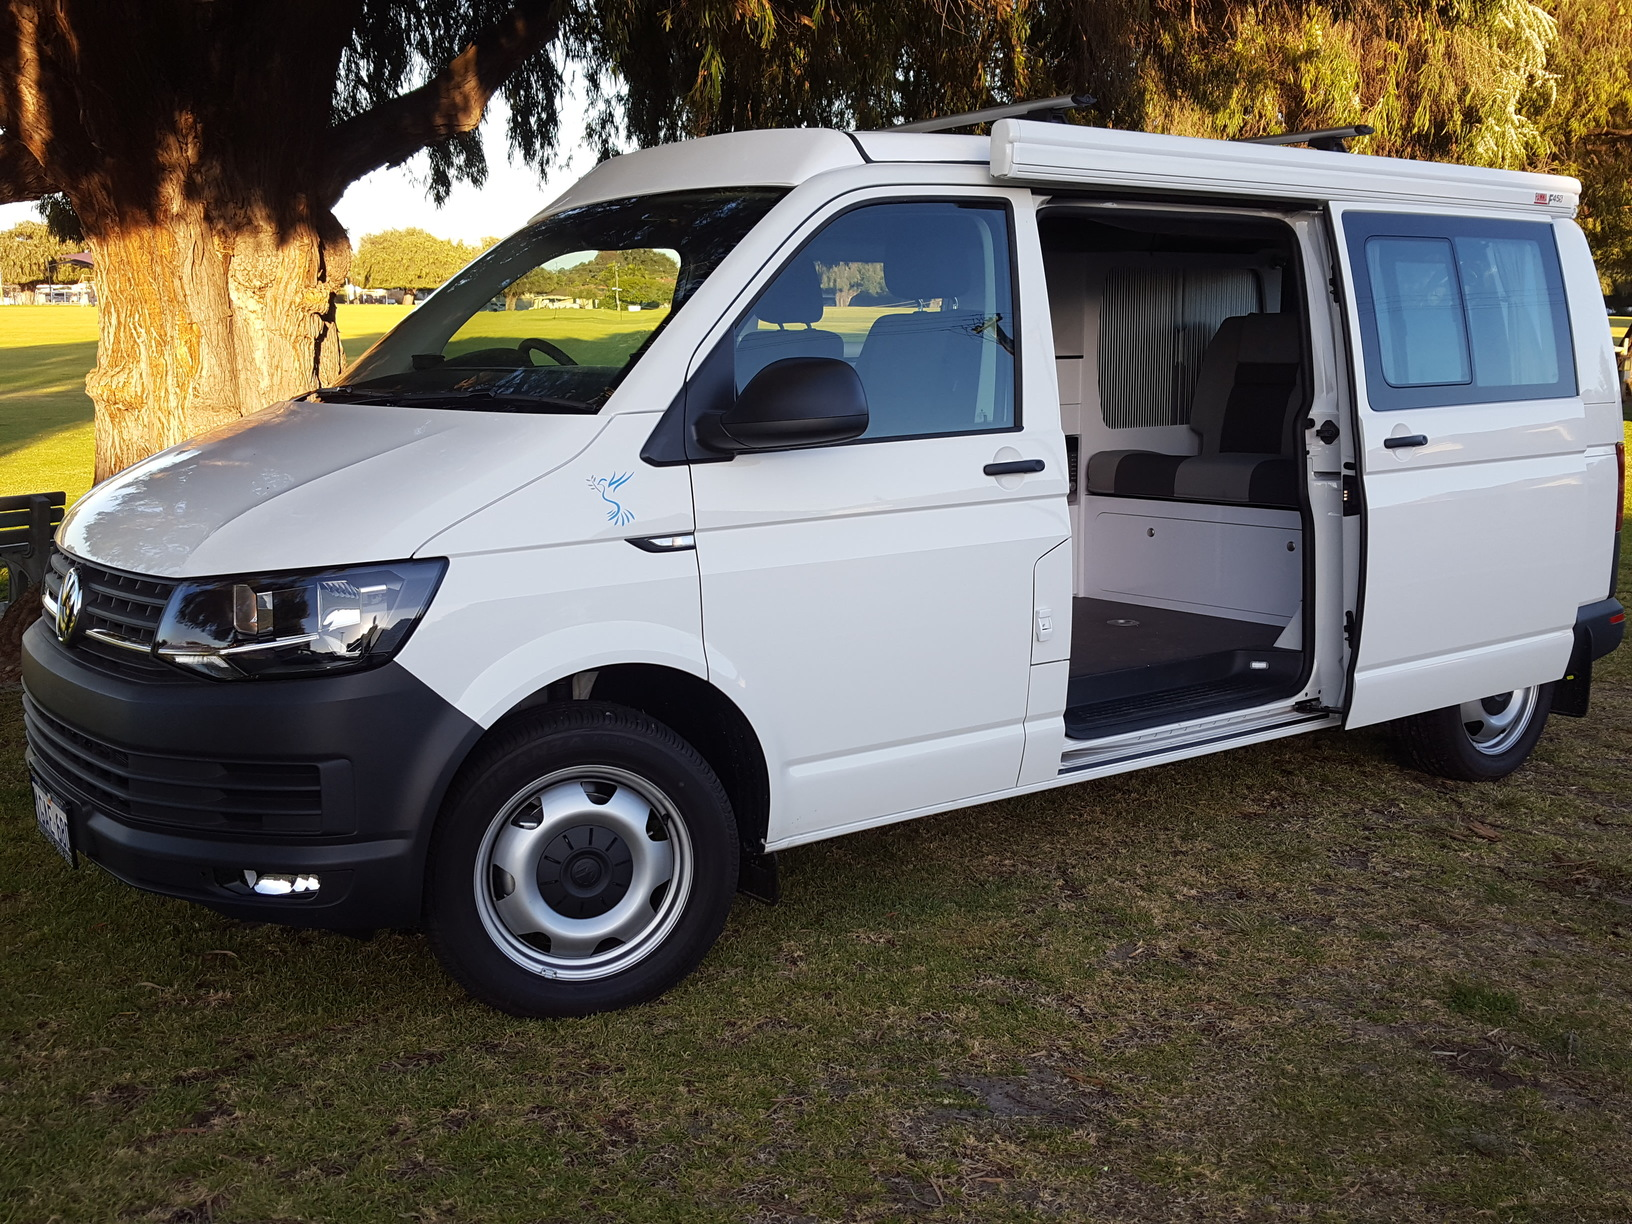 campervans for sale in Perth